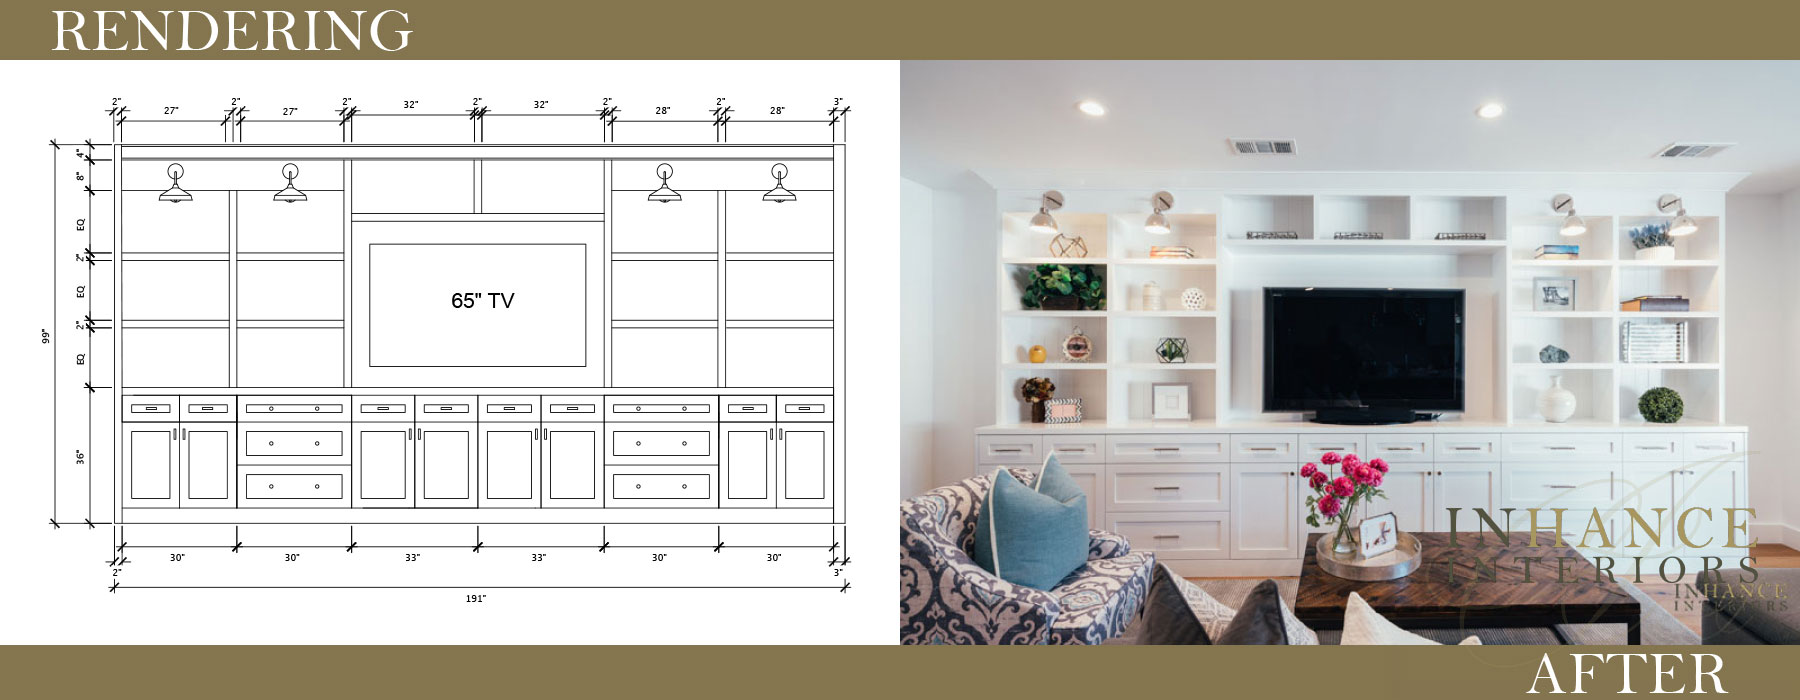 Northvale_Before-and-After_Rendering-of-Built-Ins.jpg